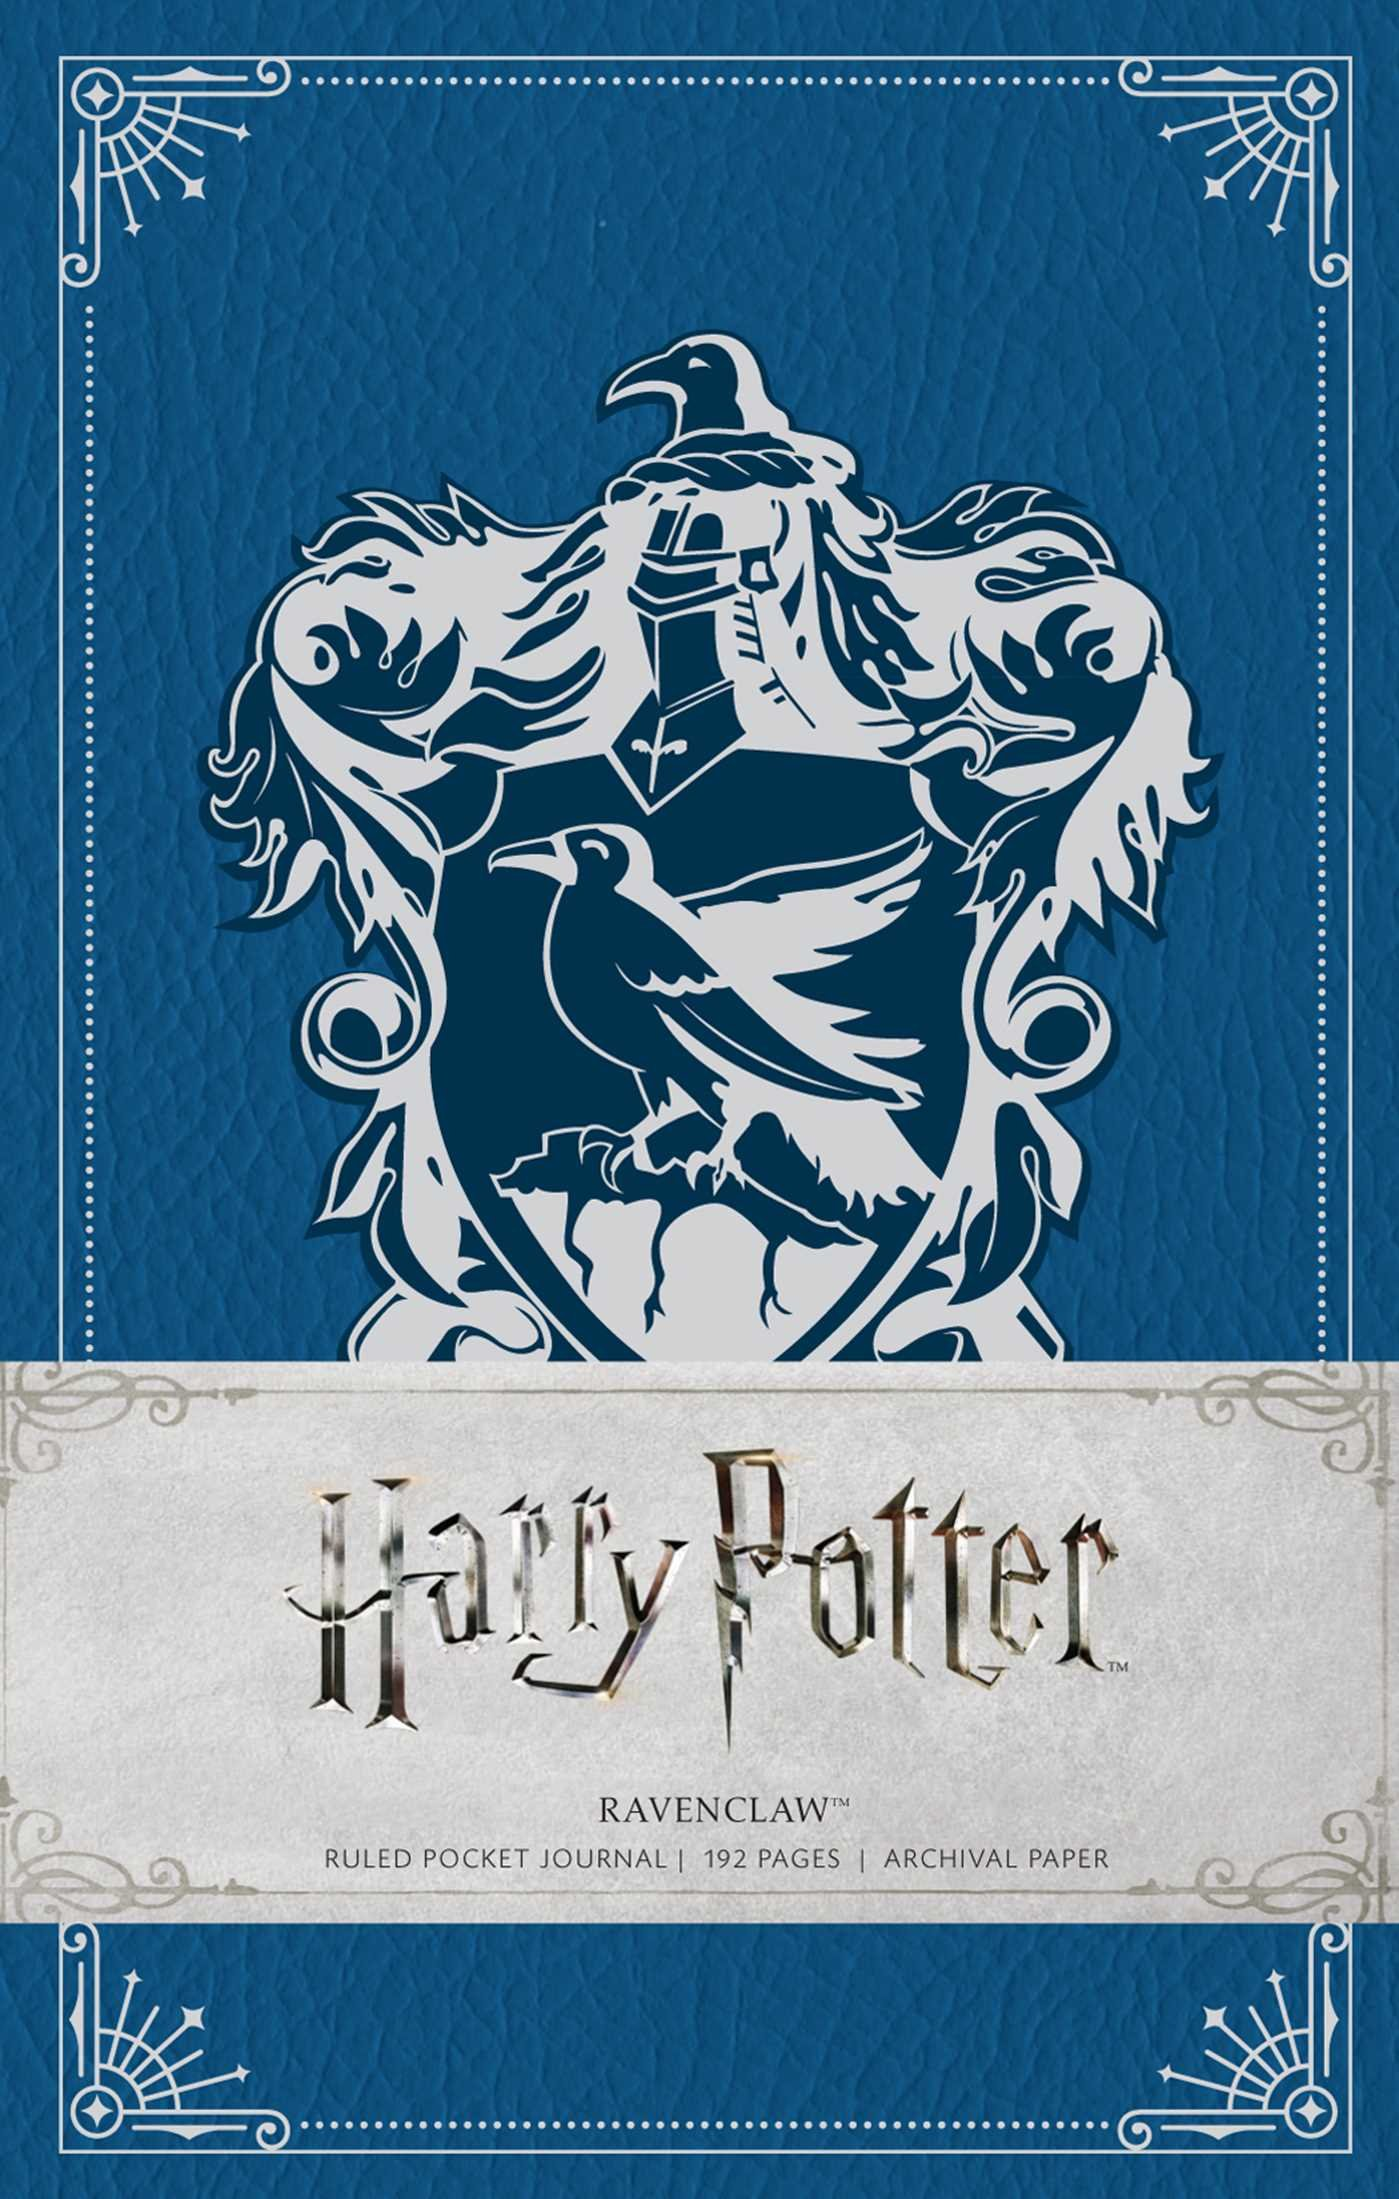 HARRY POTTER: RAVENCLAW HARDCOVER RULED NOTEBOOK (Insights Journals)